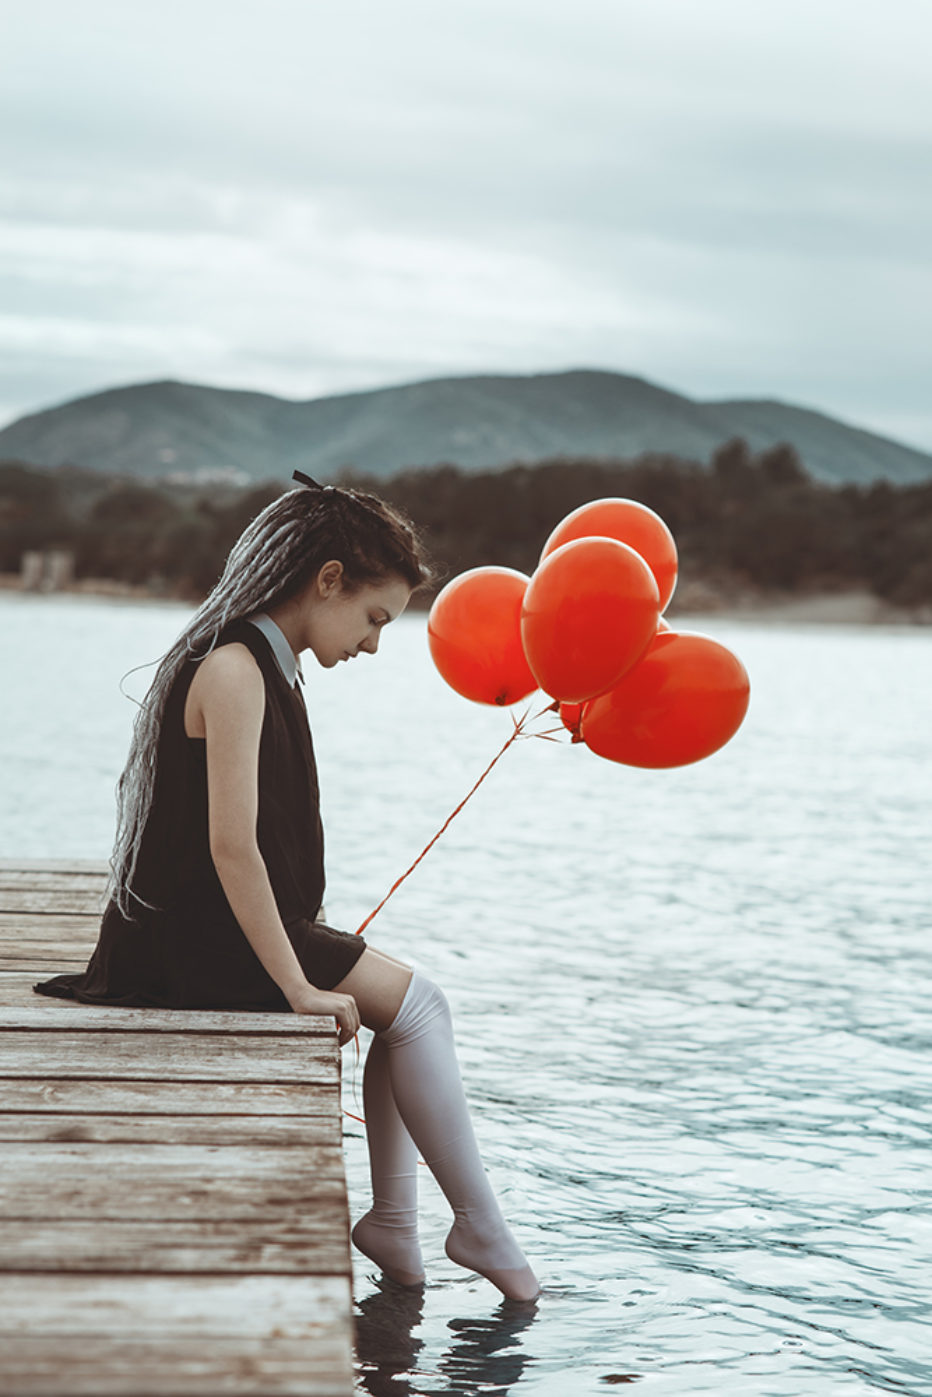 """""""Red balloons"""" by Sergio Derosas"""